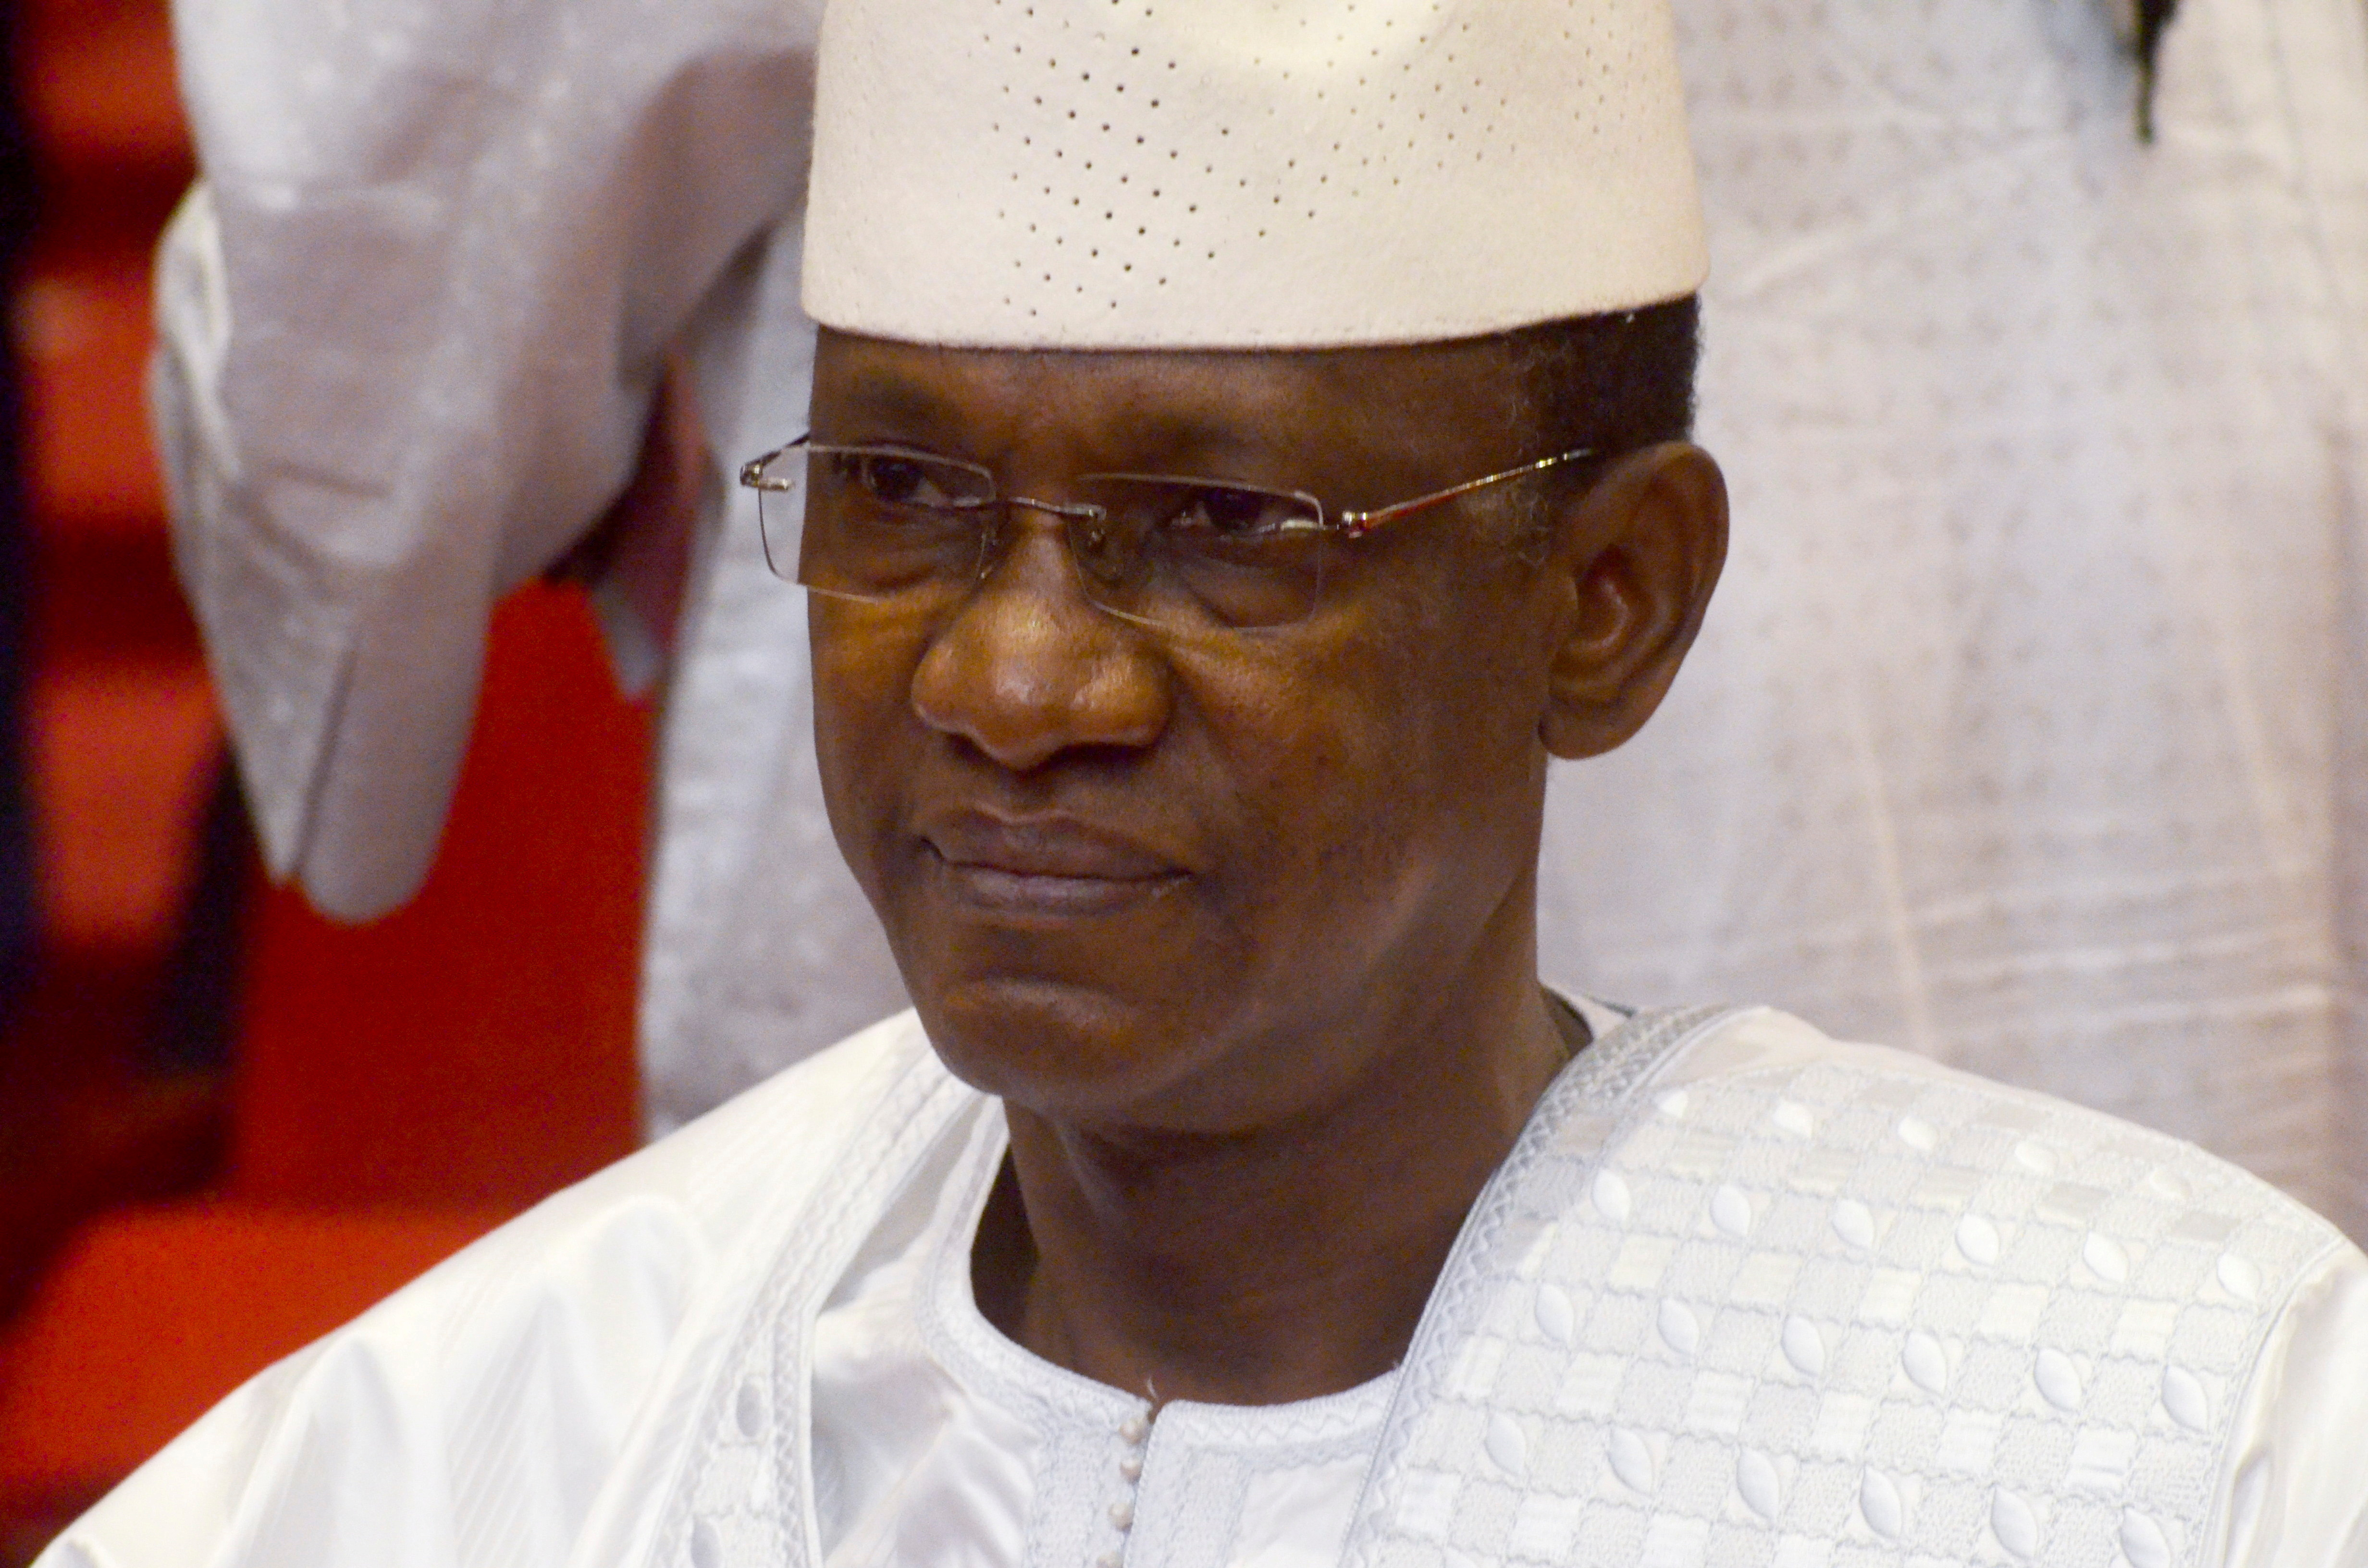 Malian opposition leader Choguel Maiga named transitional prime minister attends the inauguration ceremony of Colonel Assimi Goita the new interim president in Bamako, Mali, June 7, 2021. REUTERS/Amadou Keita/File Photo